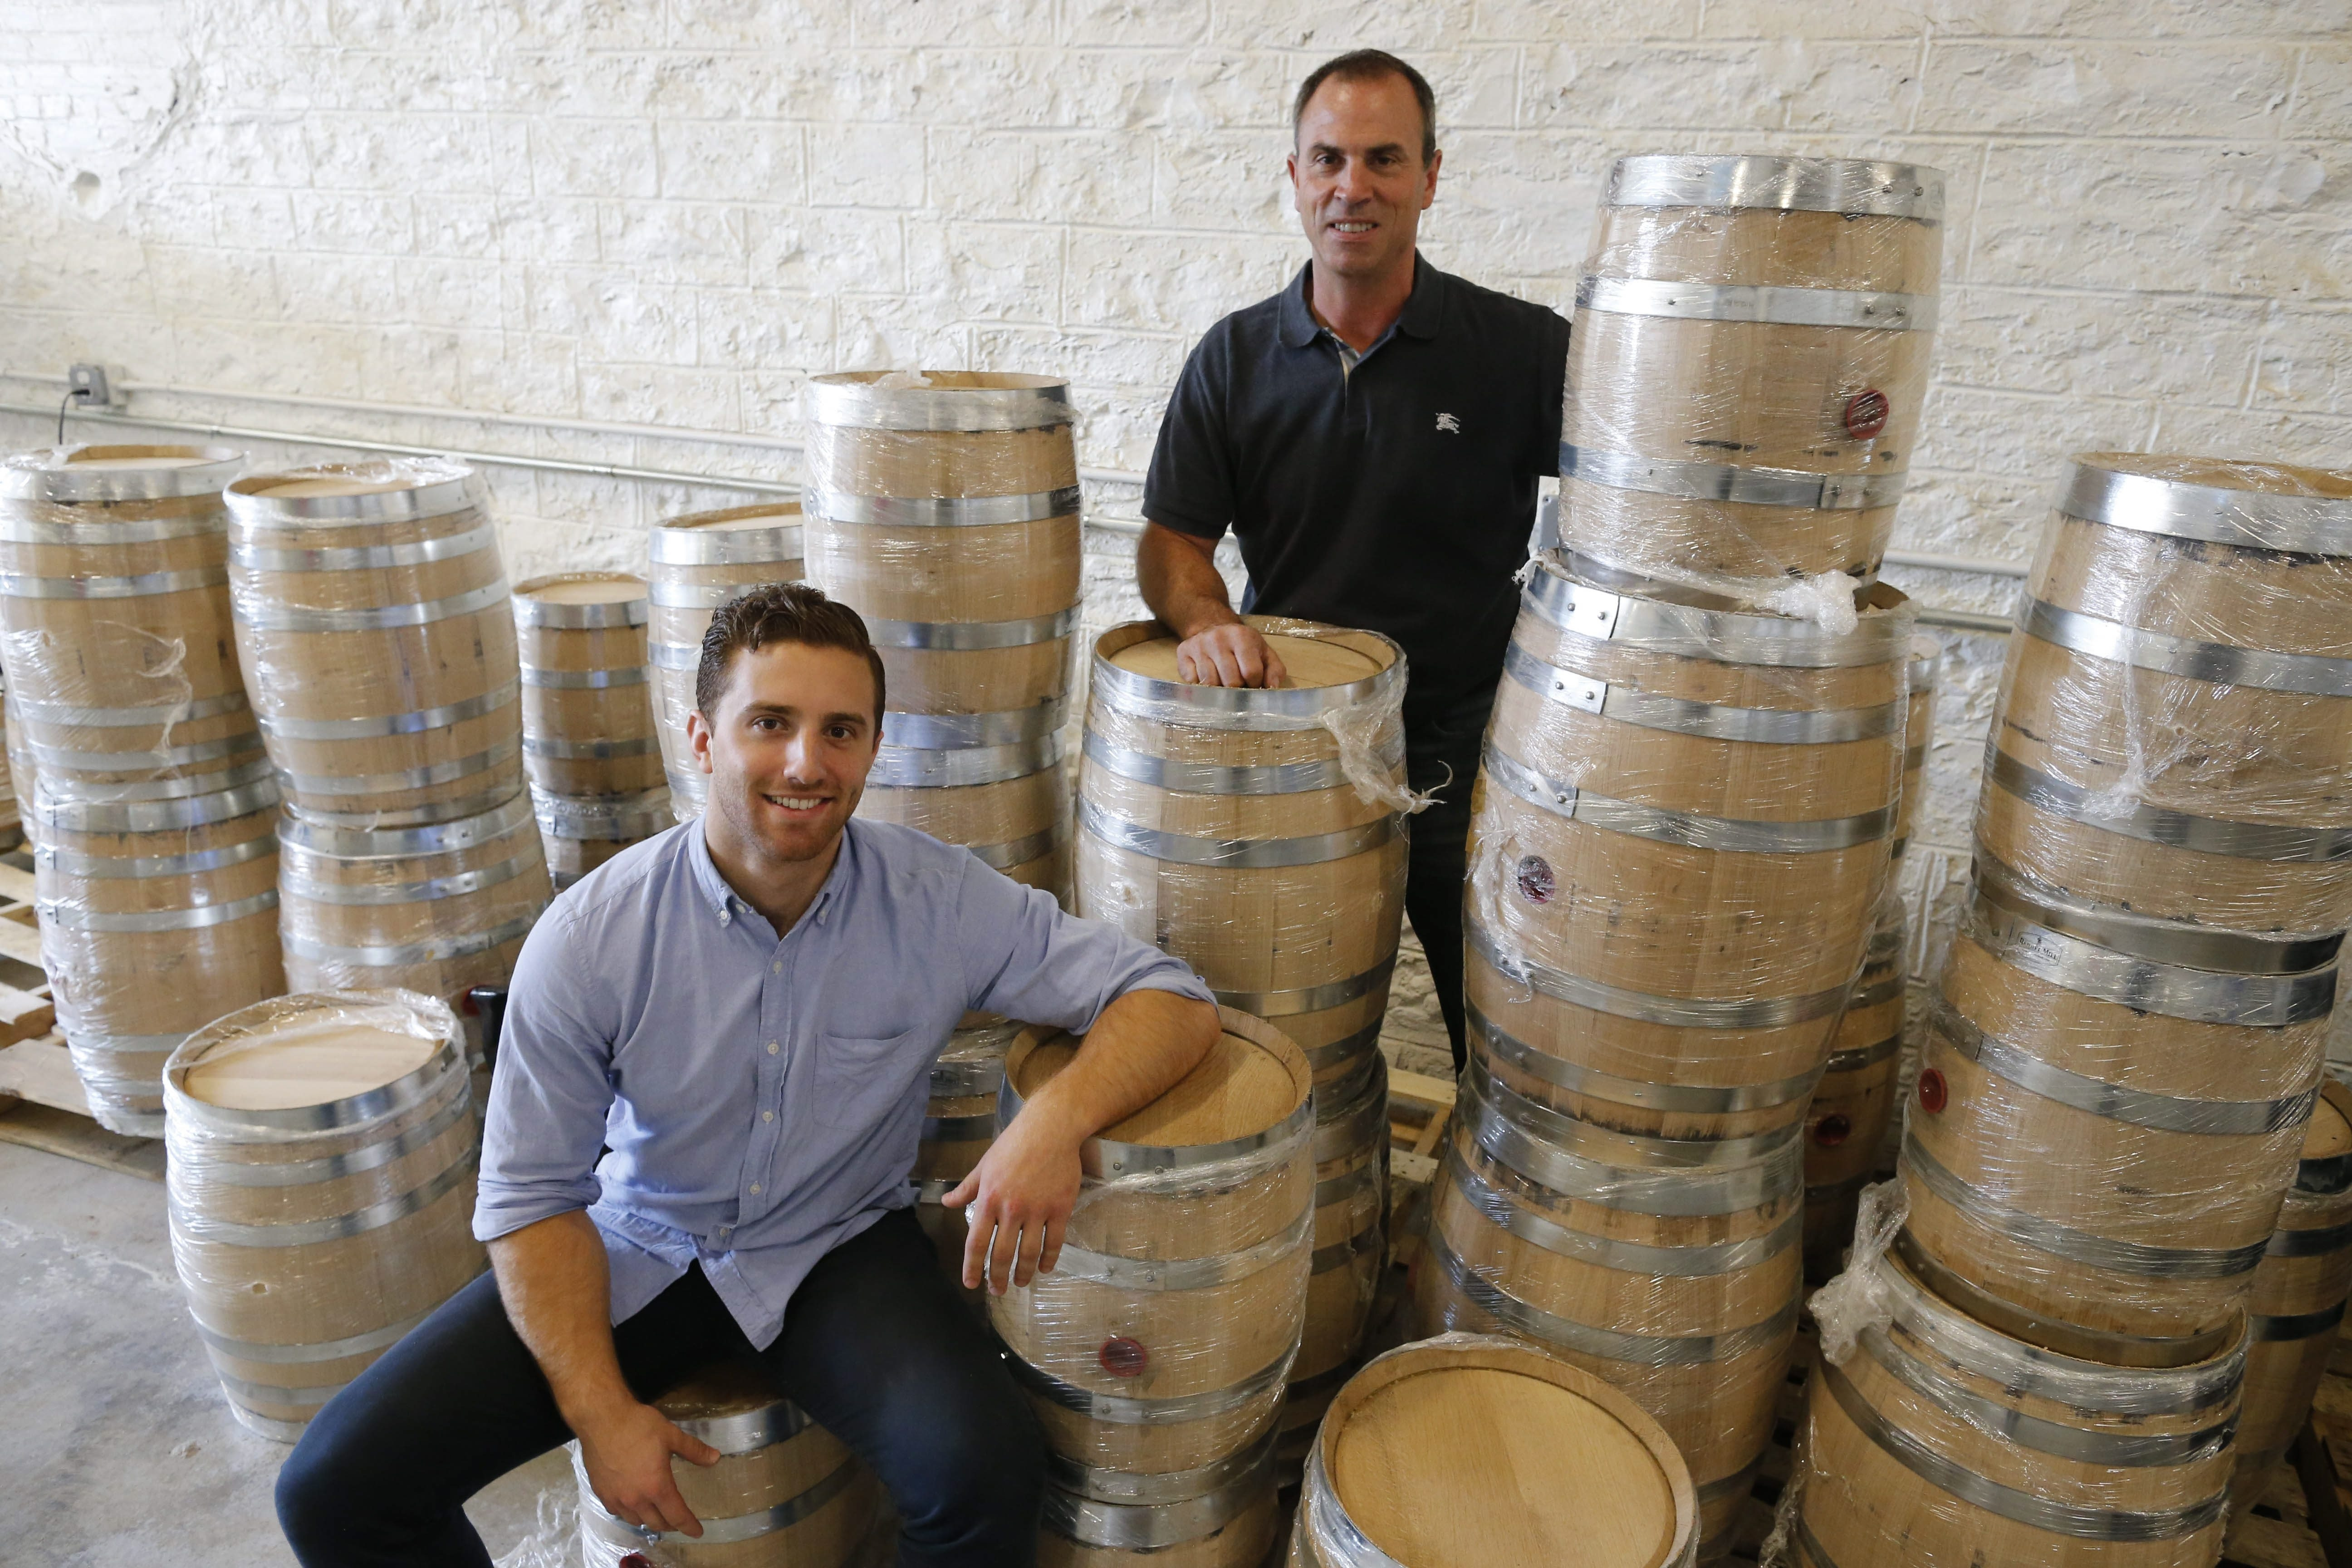 Bobby Finan, left, and Sean Insalaco are partners in Tommyrotter, makers of custom batches of gin, vodka and other spirits using New York State ingredients. (Derek Gee/Buffalo News)